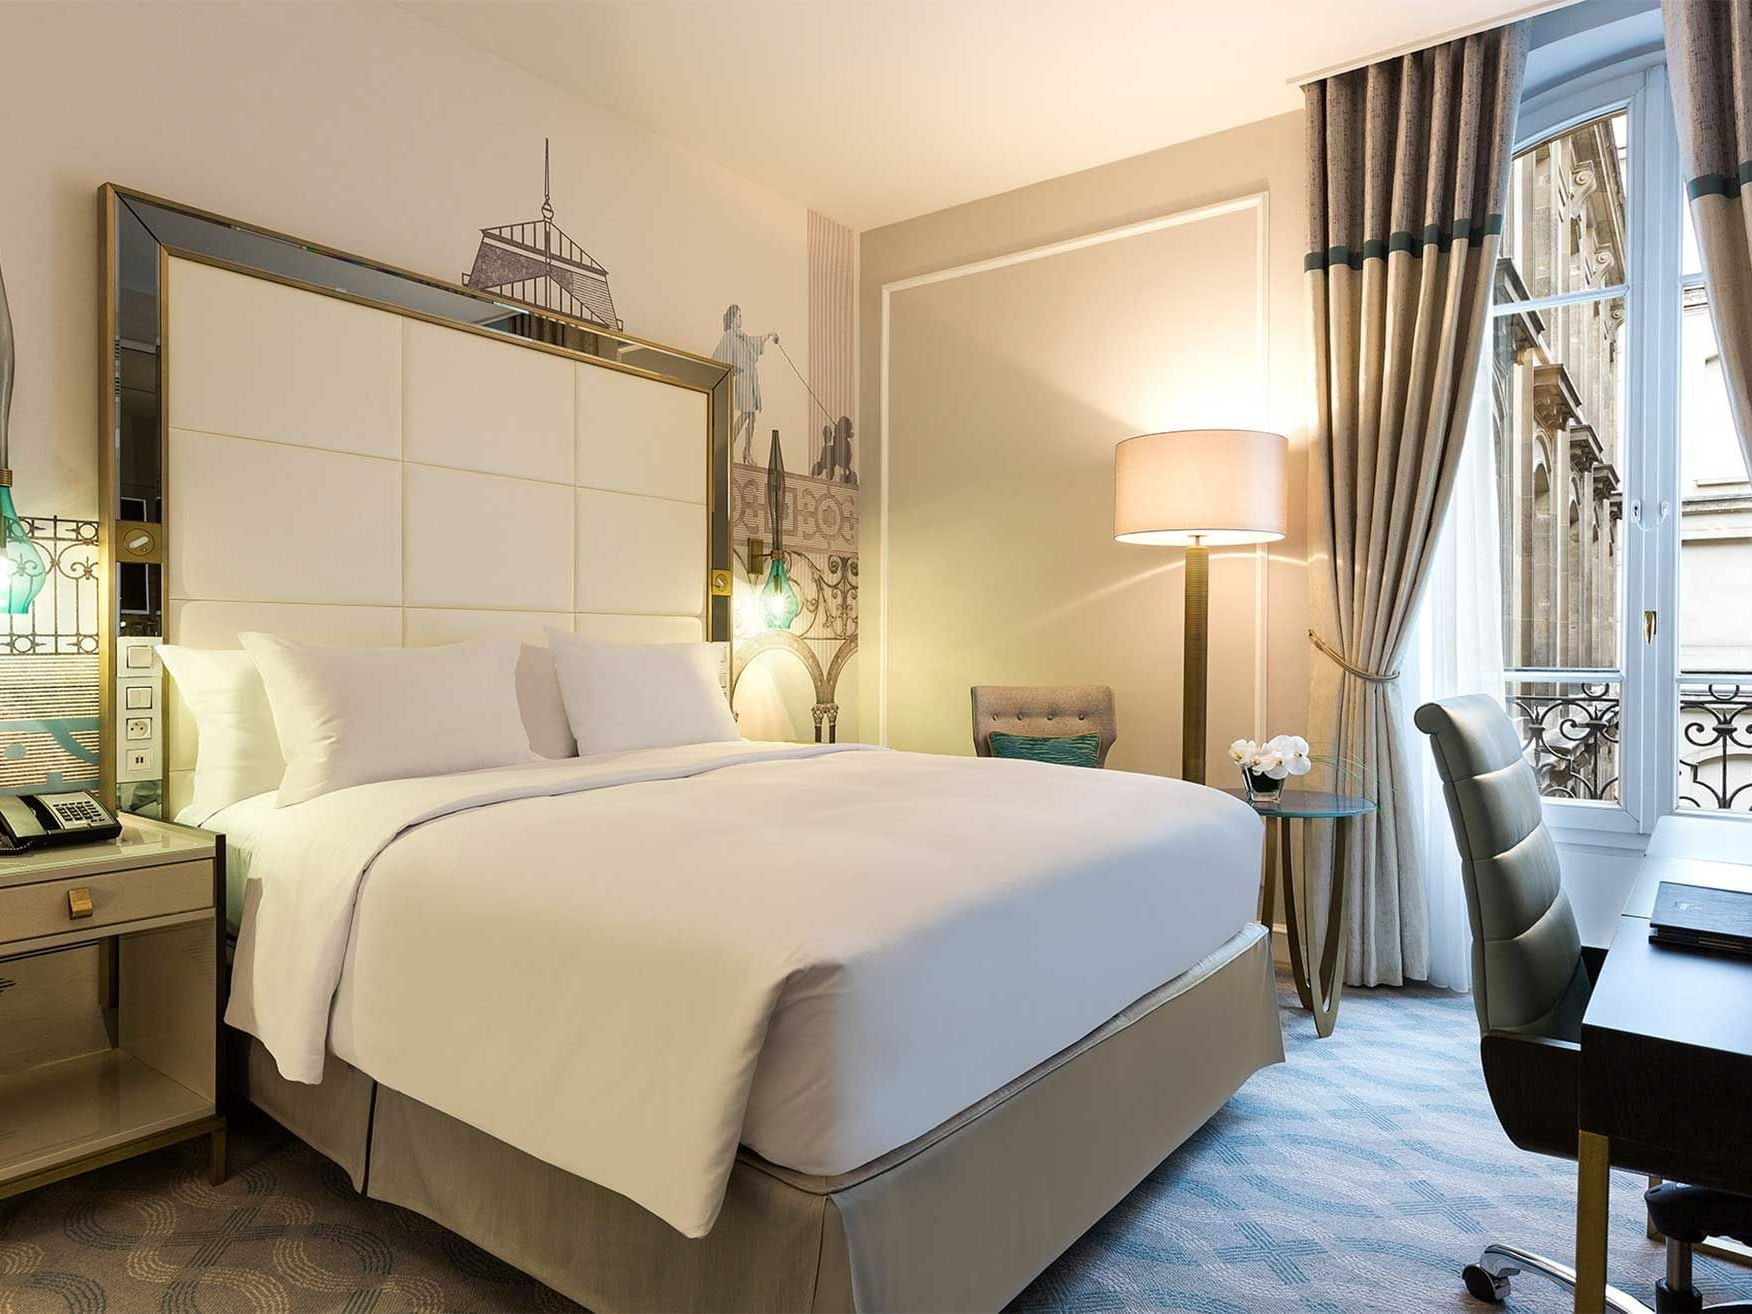 Bed & furniture in Deluxe Room at Hilton Paris Opera Hotel